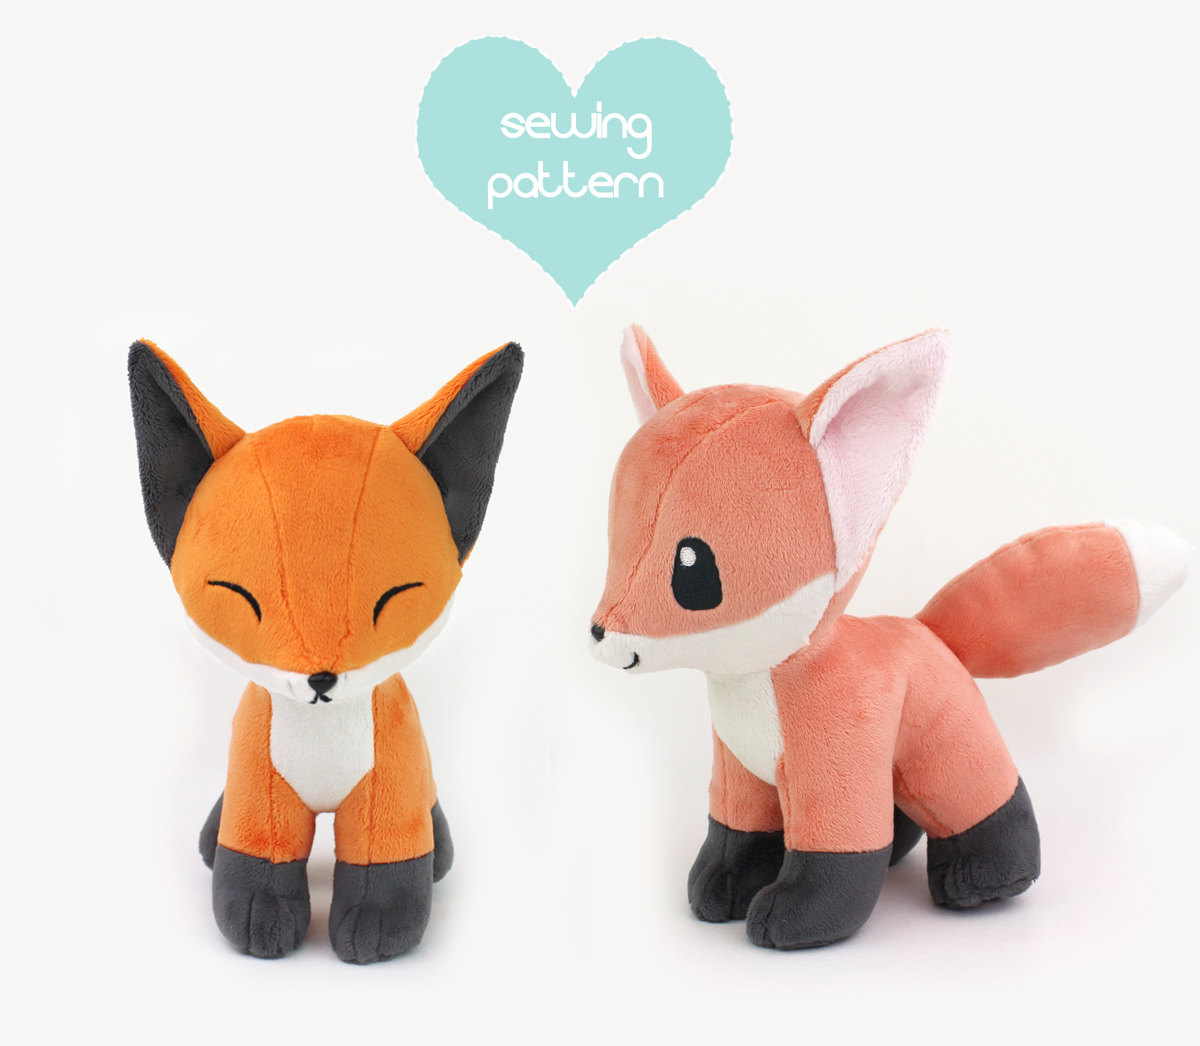 Pokemon Sewing Patterns Pdf Sewing Pattern Ba Fox Stuffed Animal With Video Etsy